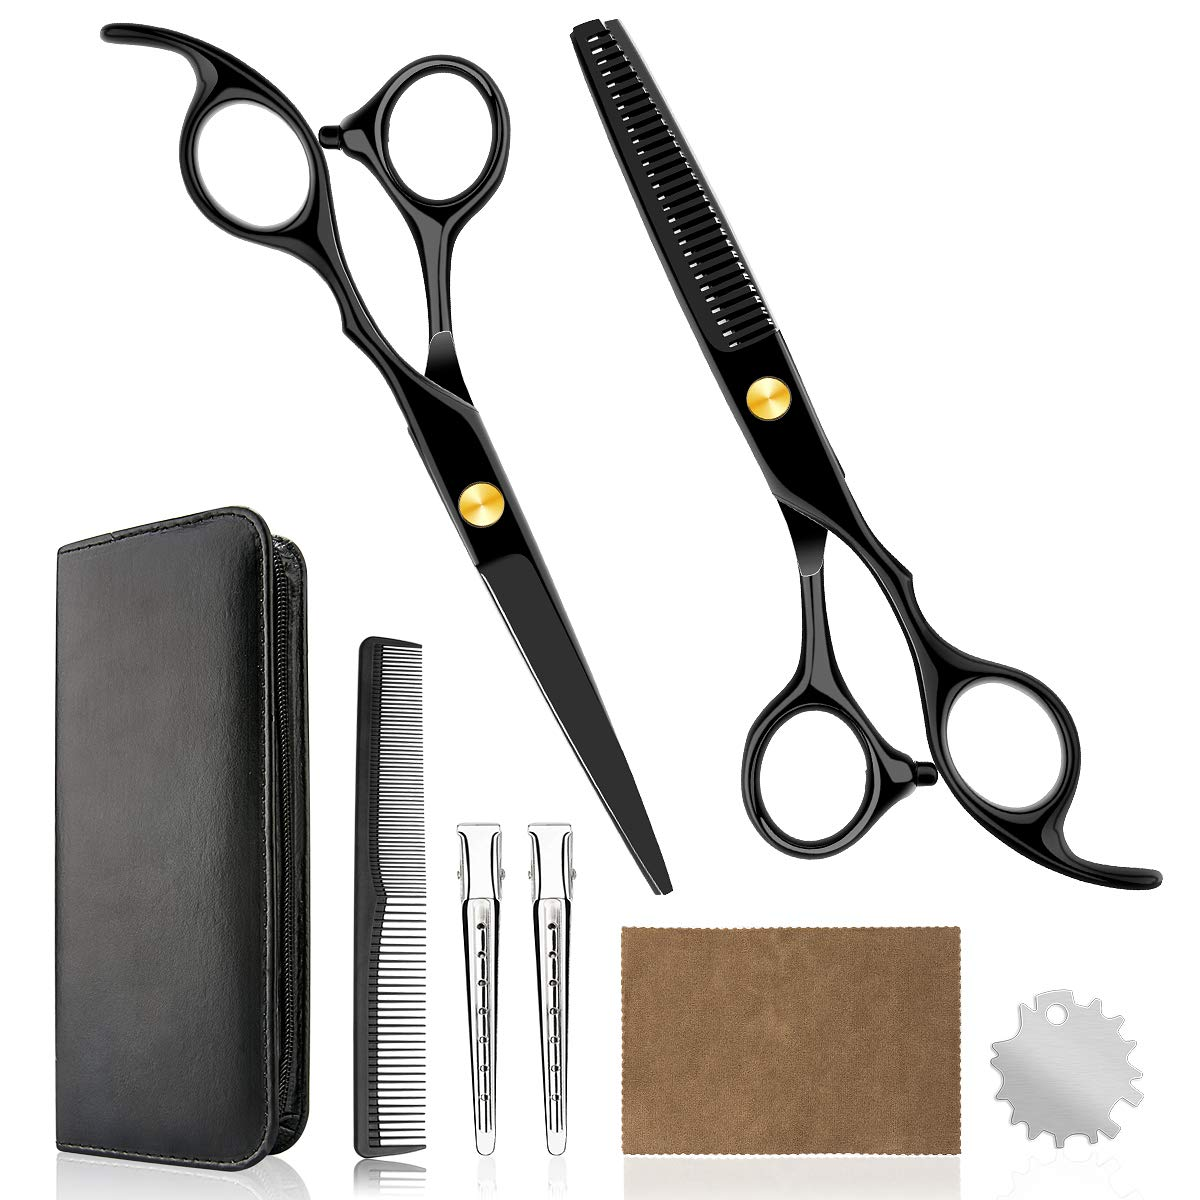 Professional Home Hair Cutting Kit - Quality Home Haircutting Scissors Barber/Salon/Home Thinning Shears Kit with Comb and Case for Men and Women (Black #2)